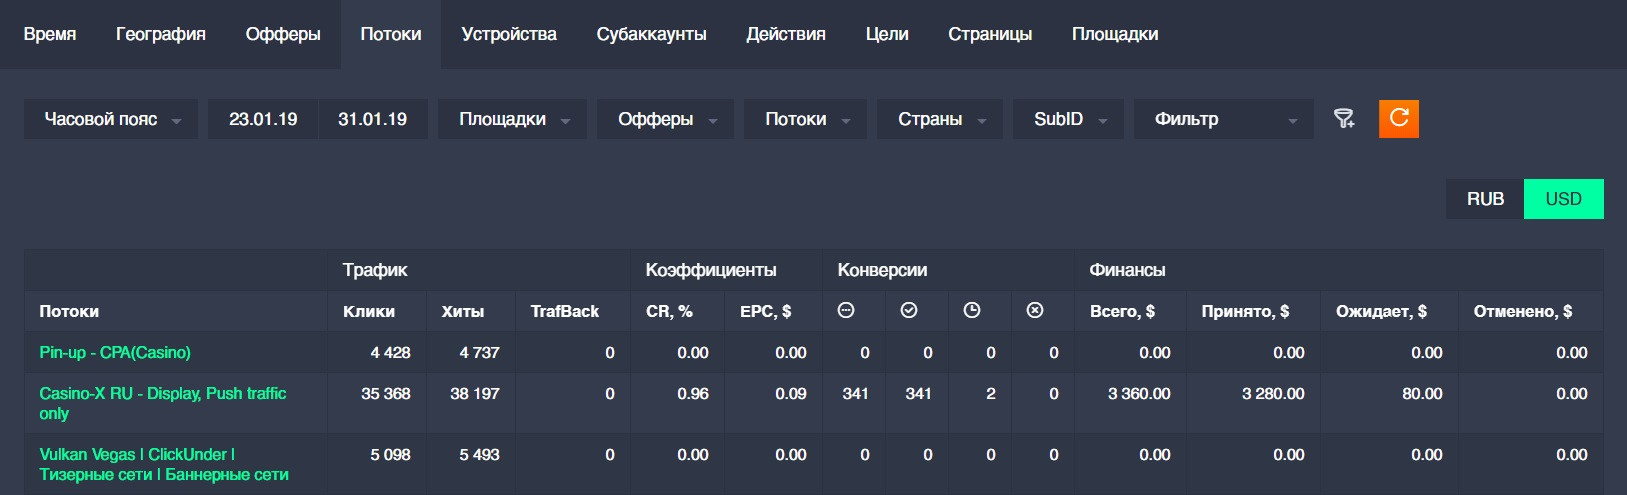 The stats in gambling and request payment to your wallet